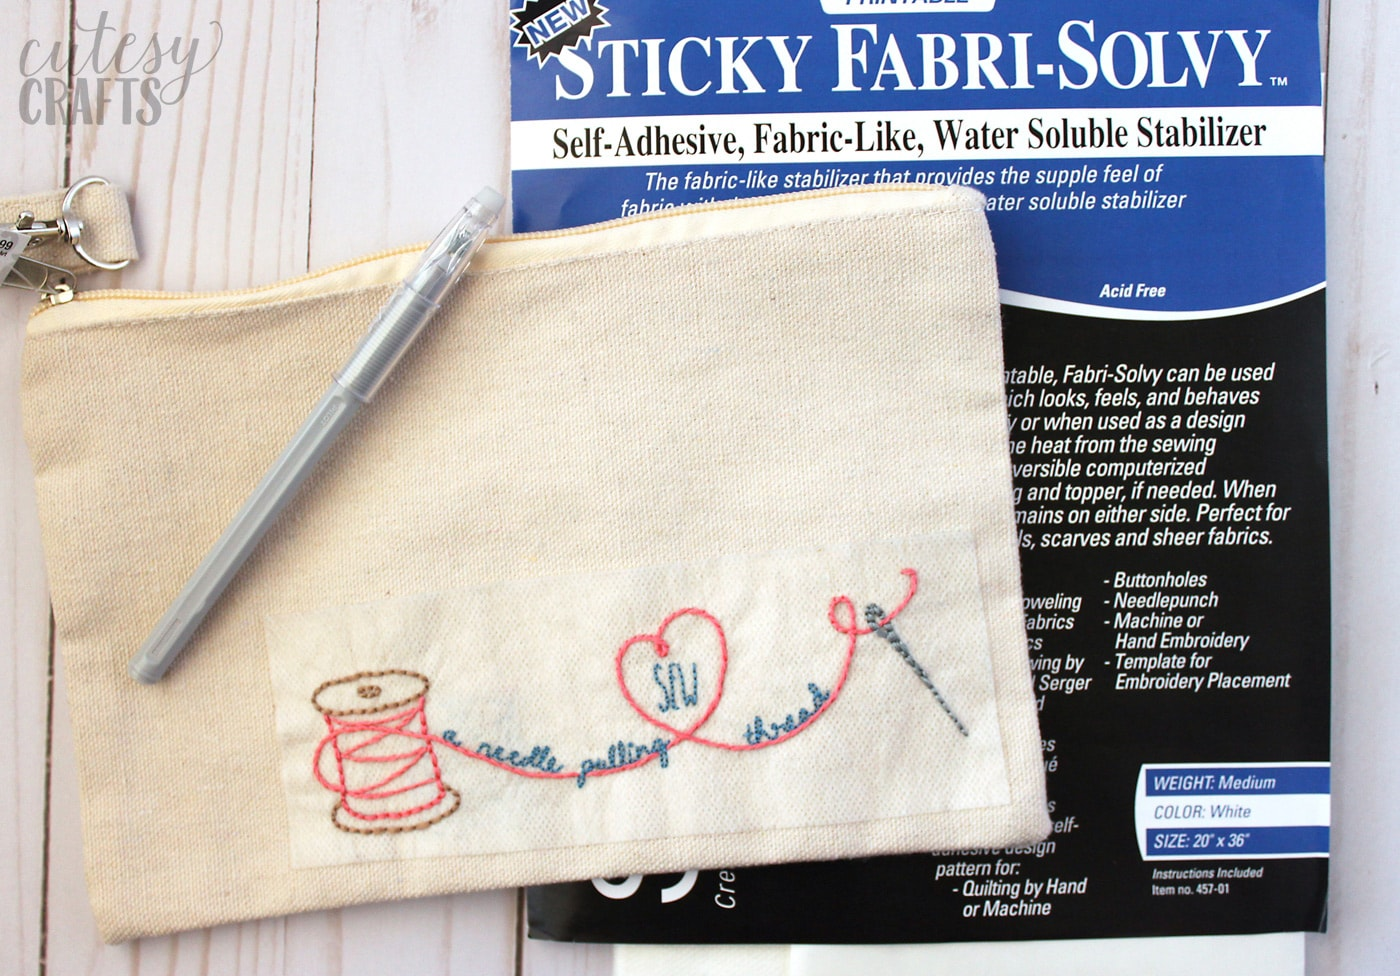 Hand embroidery designs on zip bag on white tabletop